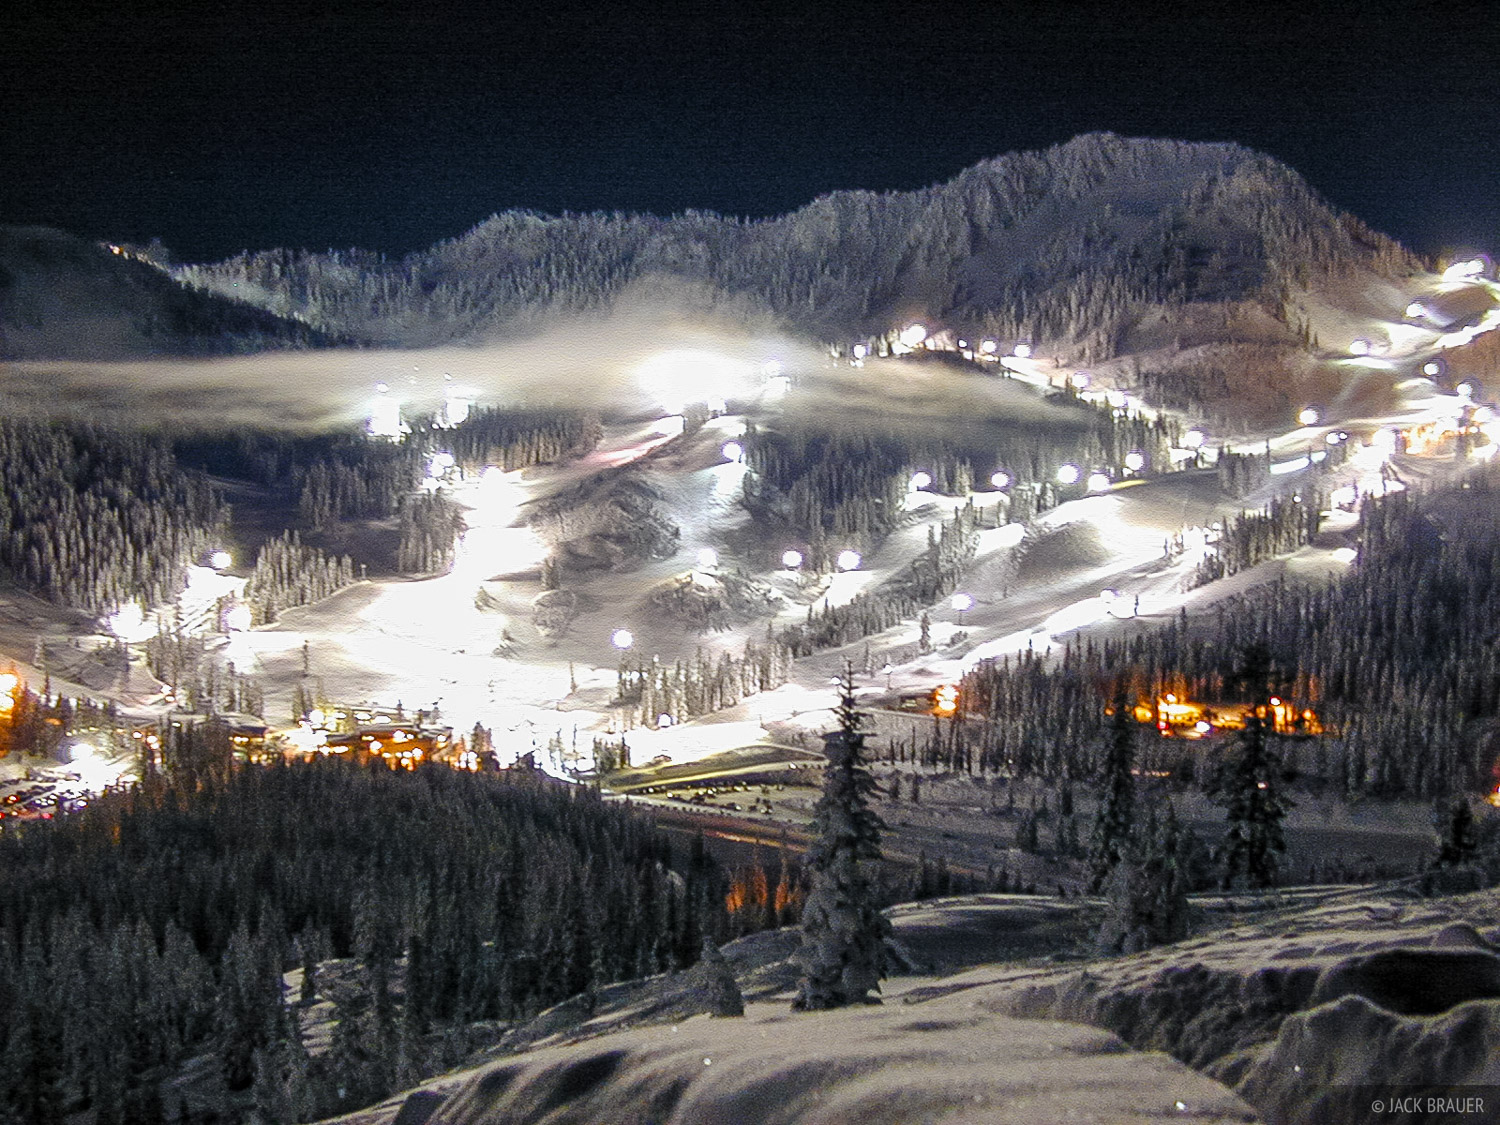 night skiing, fullmoon, Stevens Pass, Washington, Cascades, photo